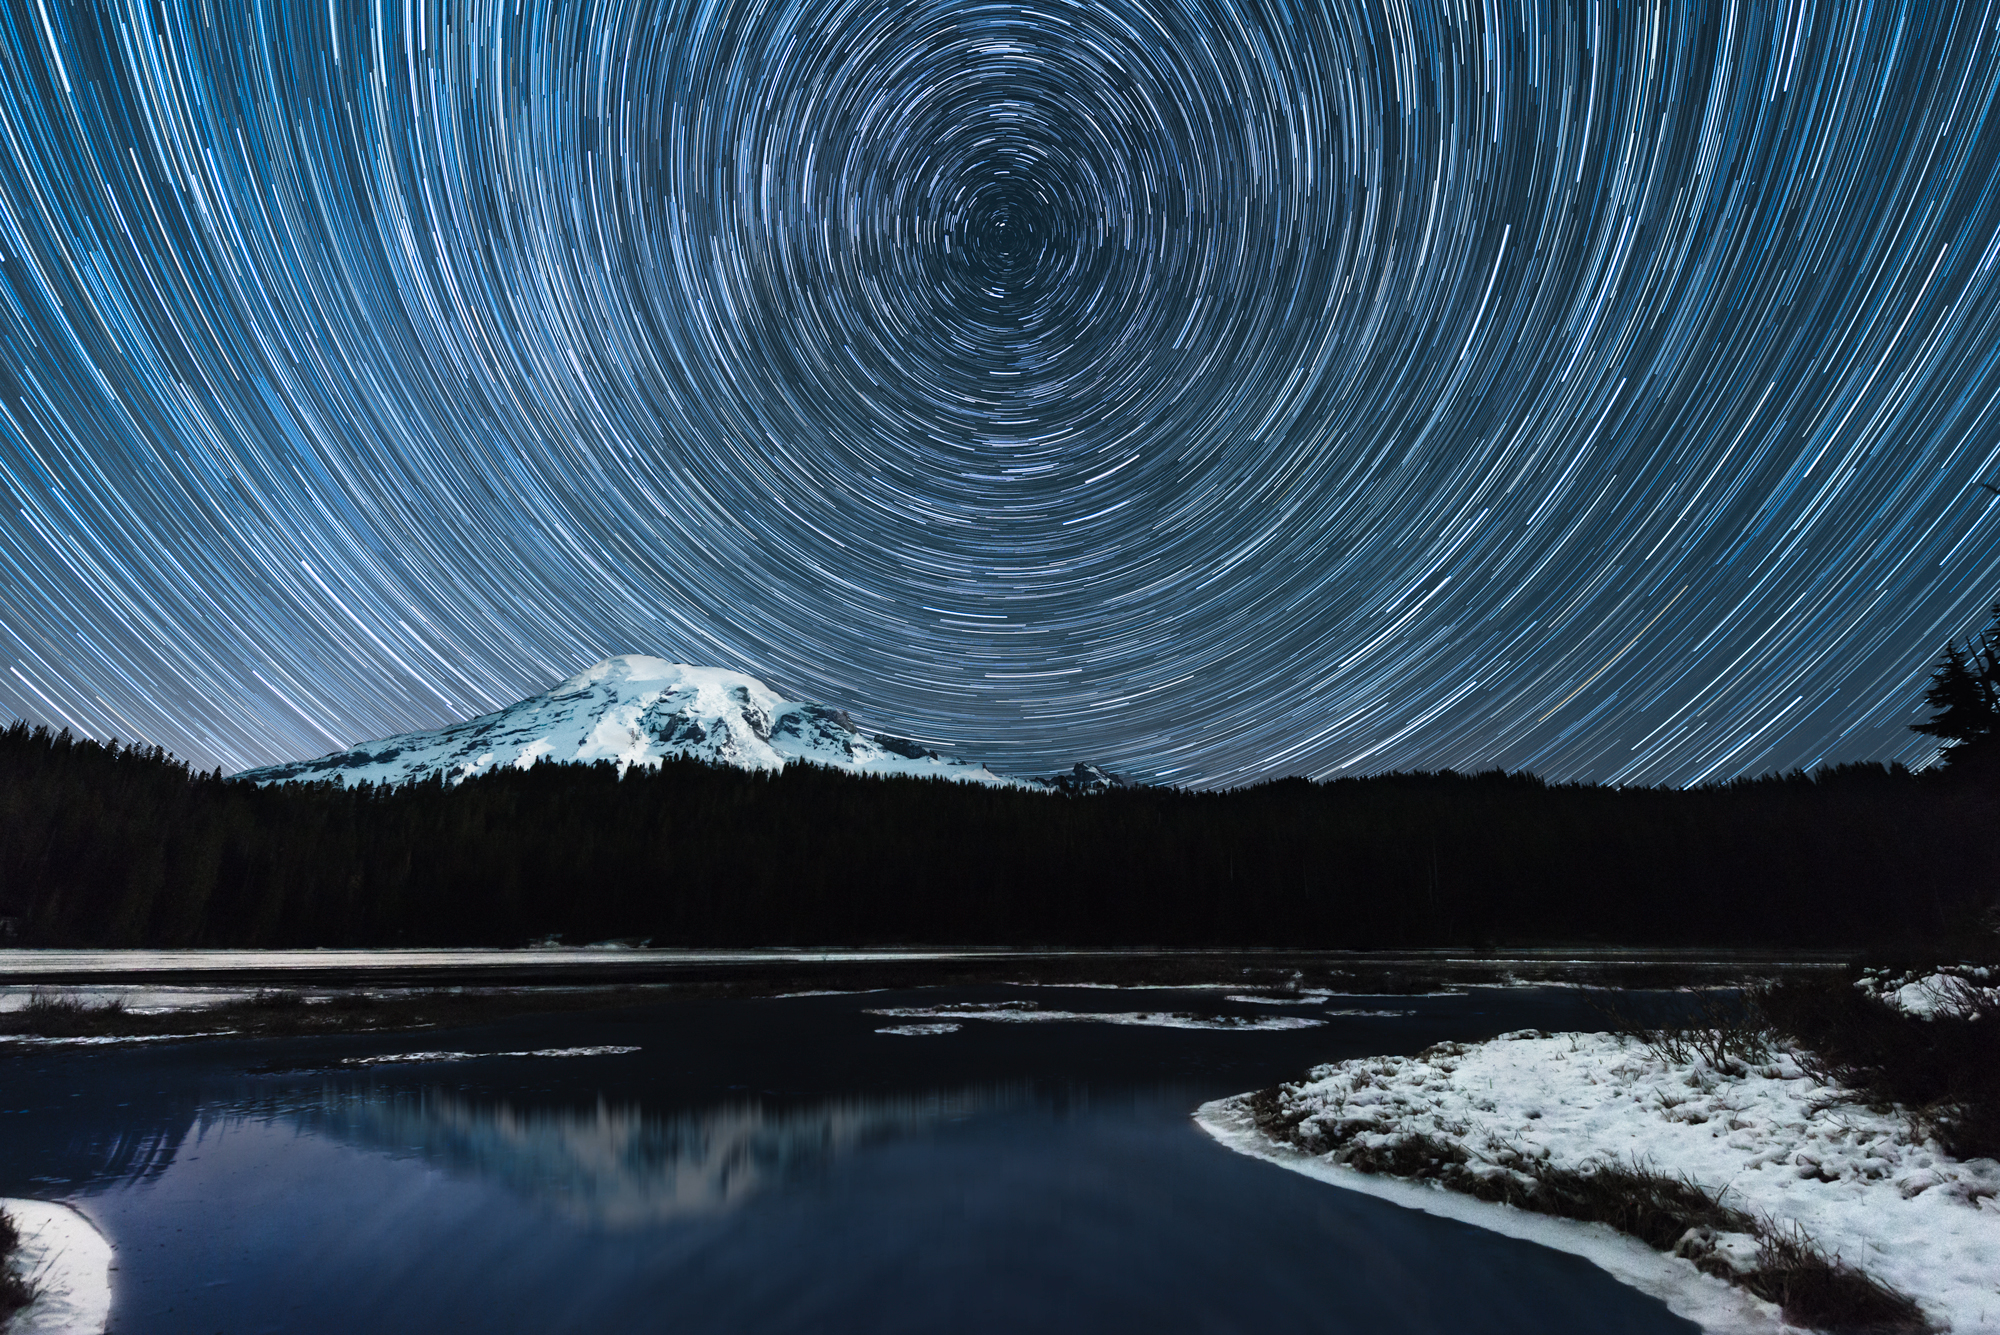 (Click image to enlarge)  Starry Night at Reflection Lake  Mount Rainier, Paradise, Washington  20x30  High gloss metal print with custom shadow mount and hanging wire.